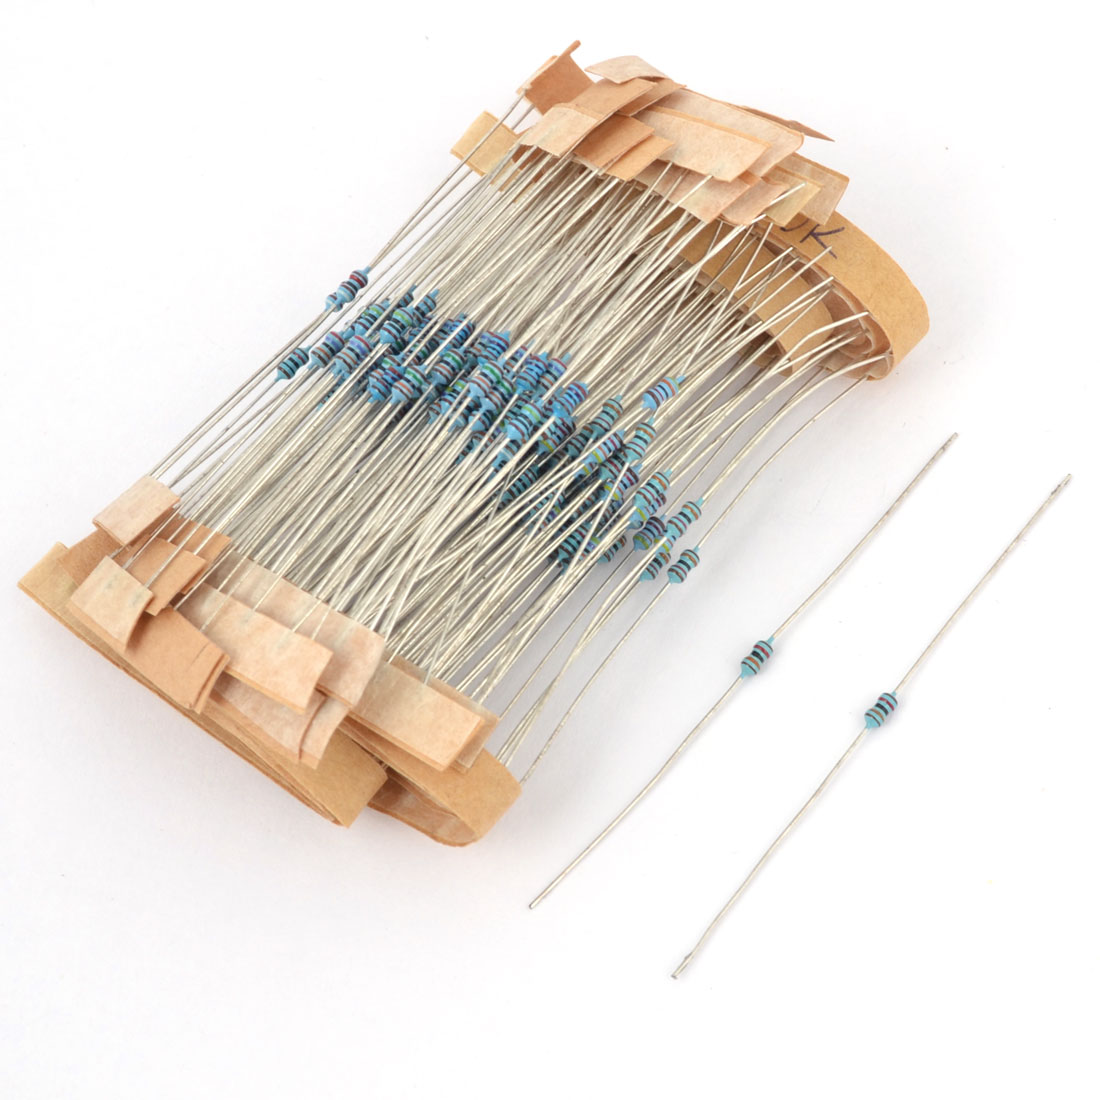 200 Pcs Axial Lead 1/6W 10K Ohm Flameproof Metal Film Resistor